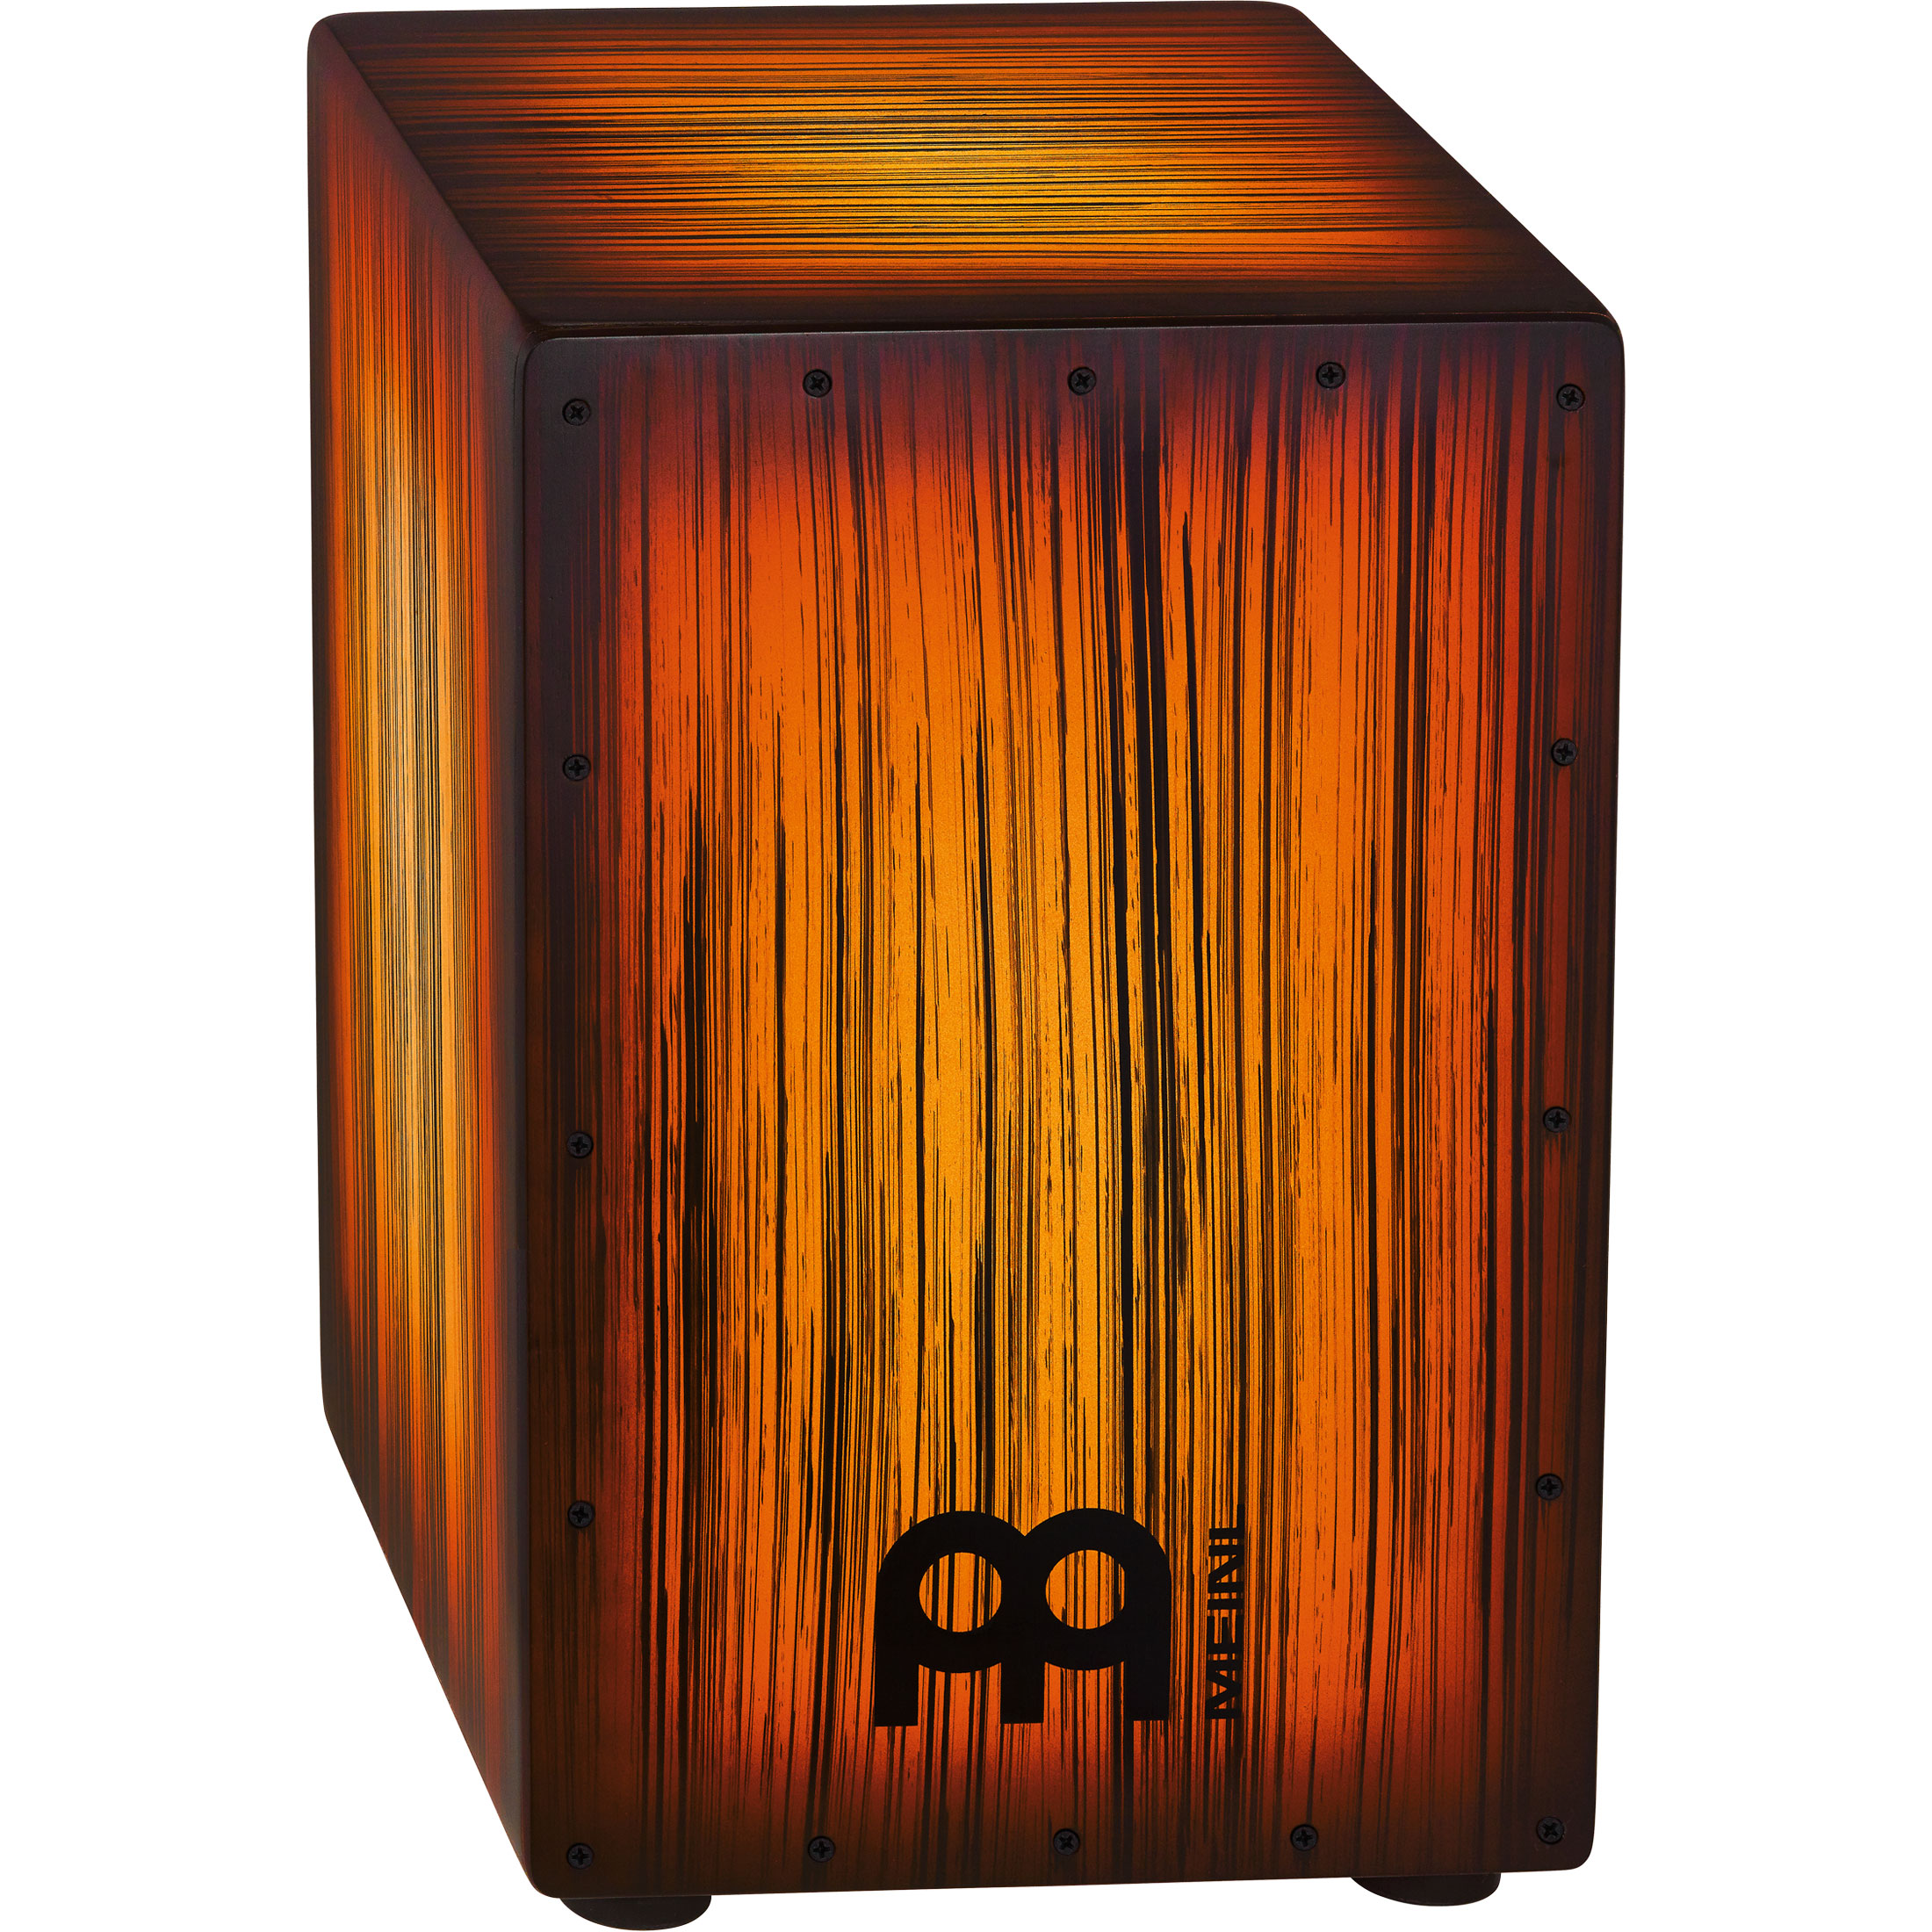 Meinl Headliner Designer Series String Cajon in Amber Tiger Stripe